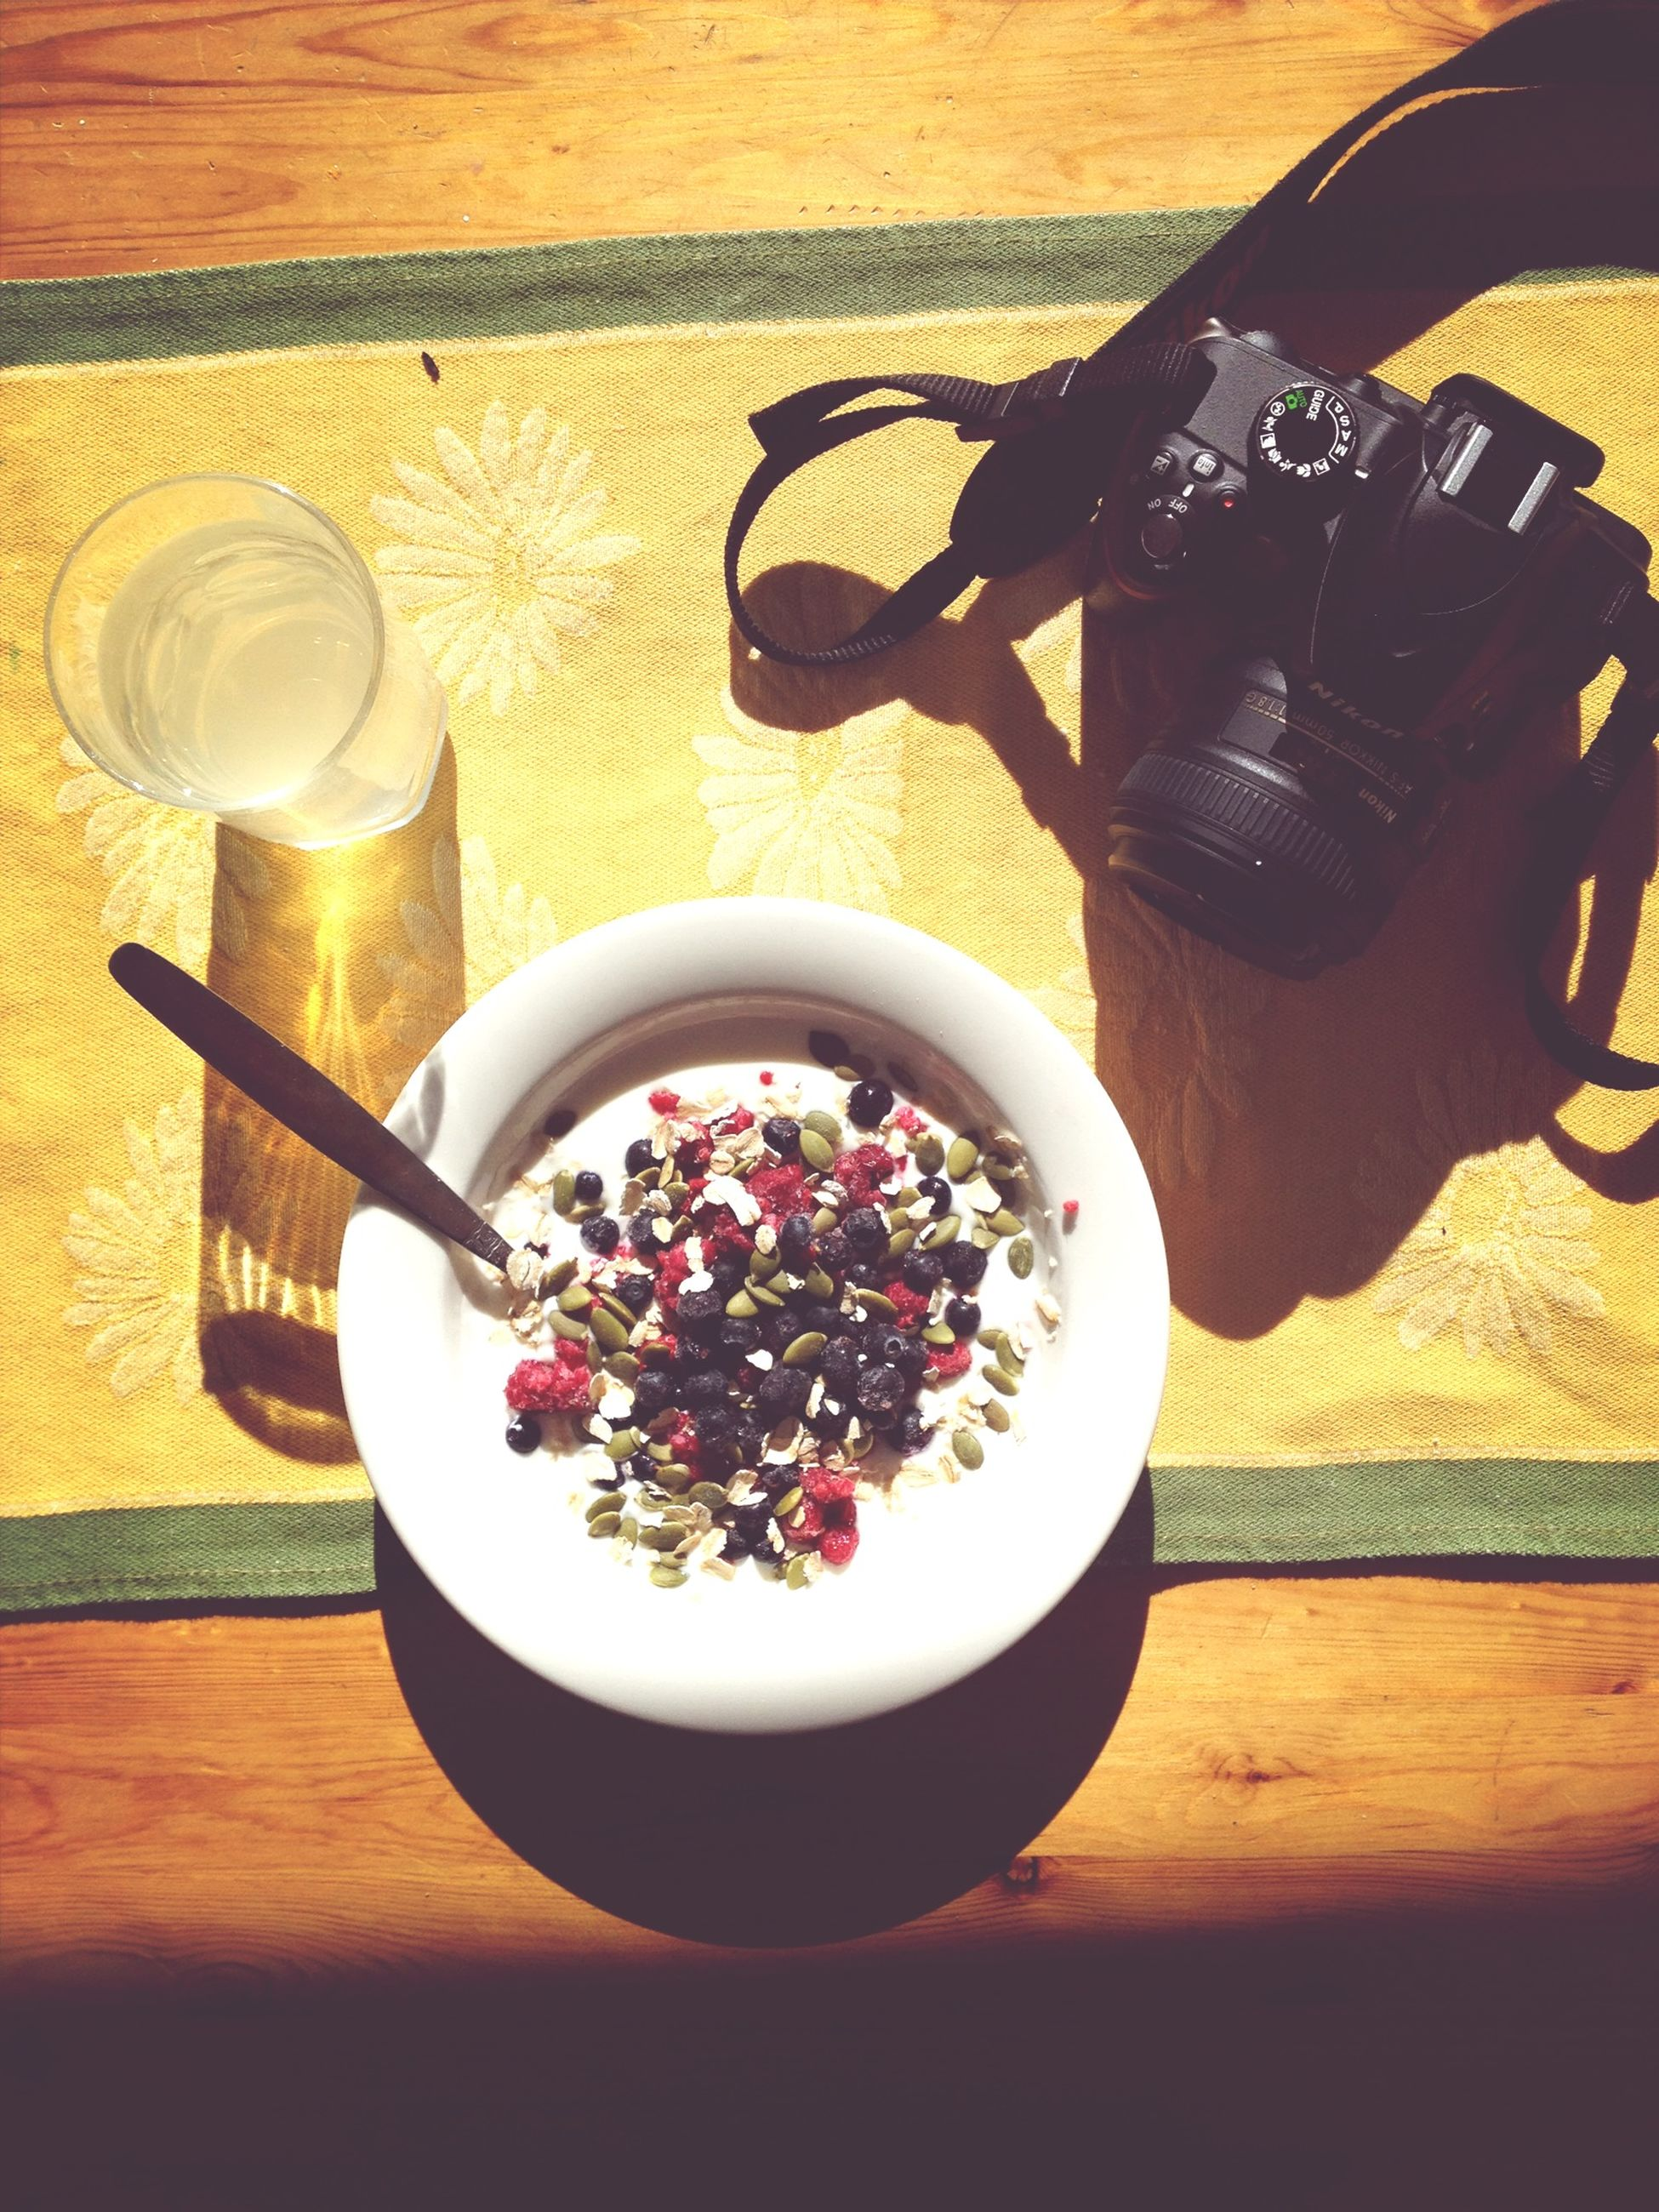 table, indoors, food and drink, freshness, still life, high angle view, drink, coffee cup, food, spoon, bowl, healthy eating, coffee - drink, refreshment, plate, flower, cup, wood - material, close-up, directly above